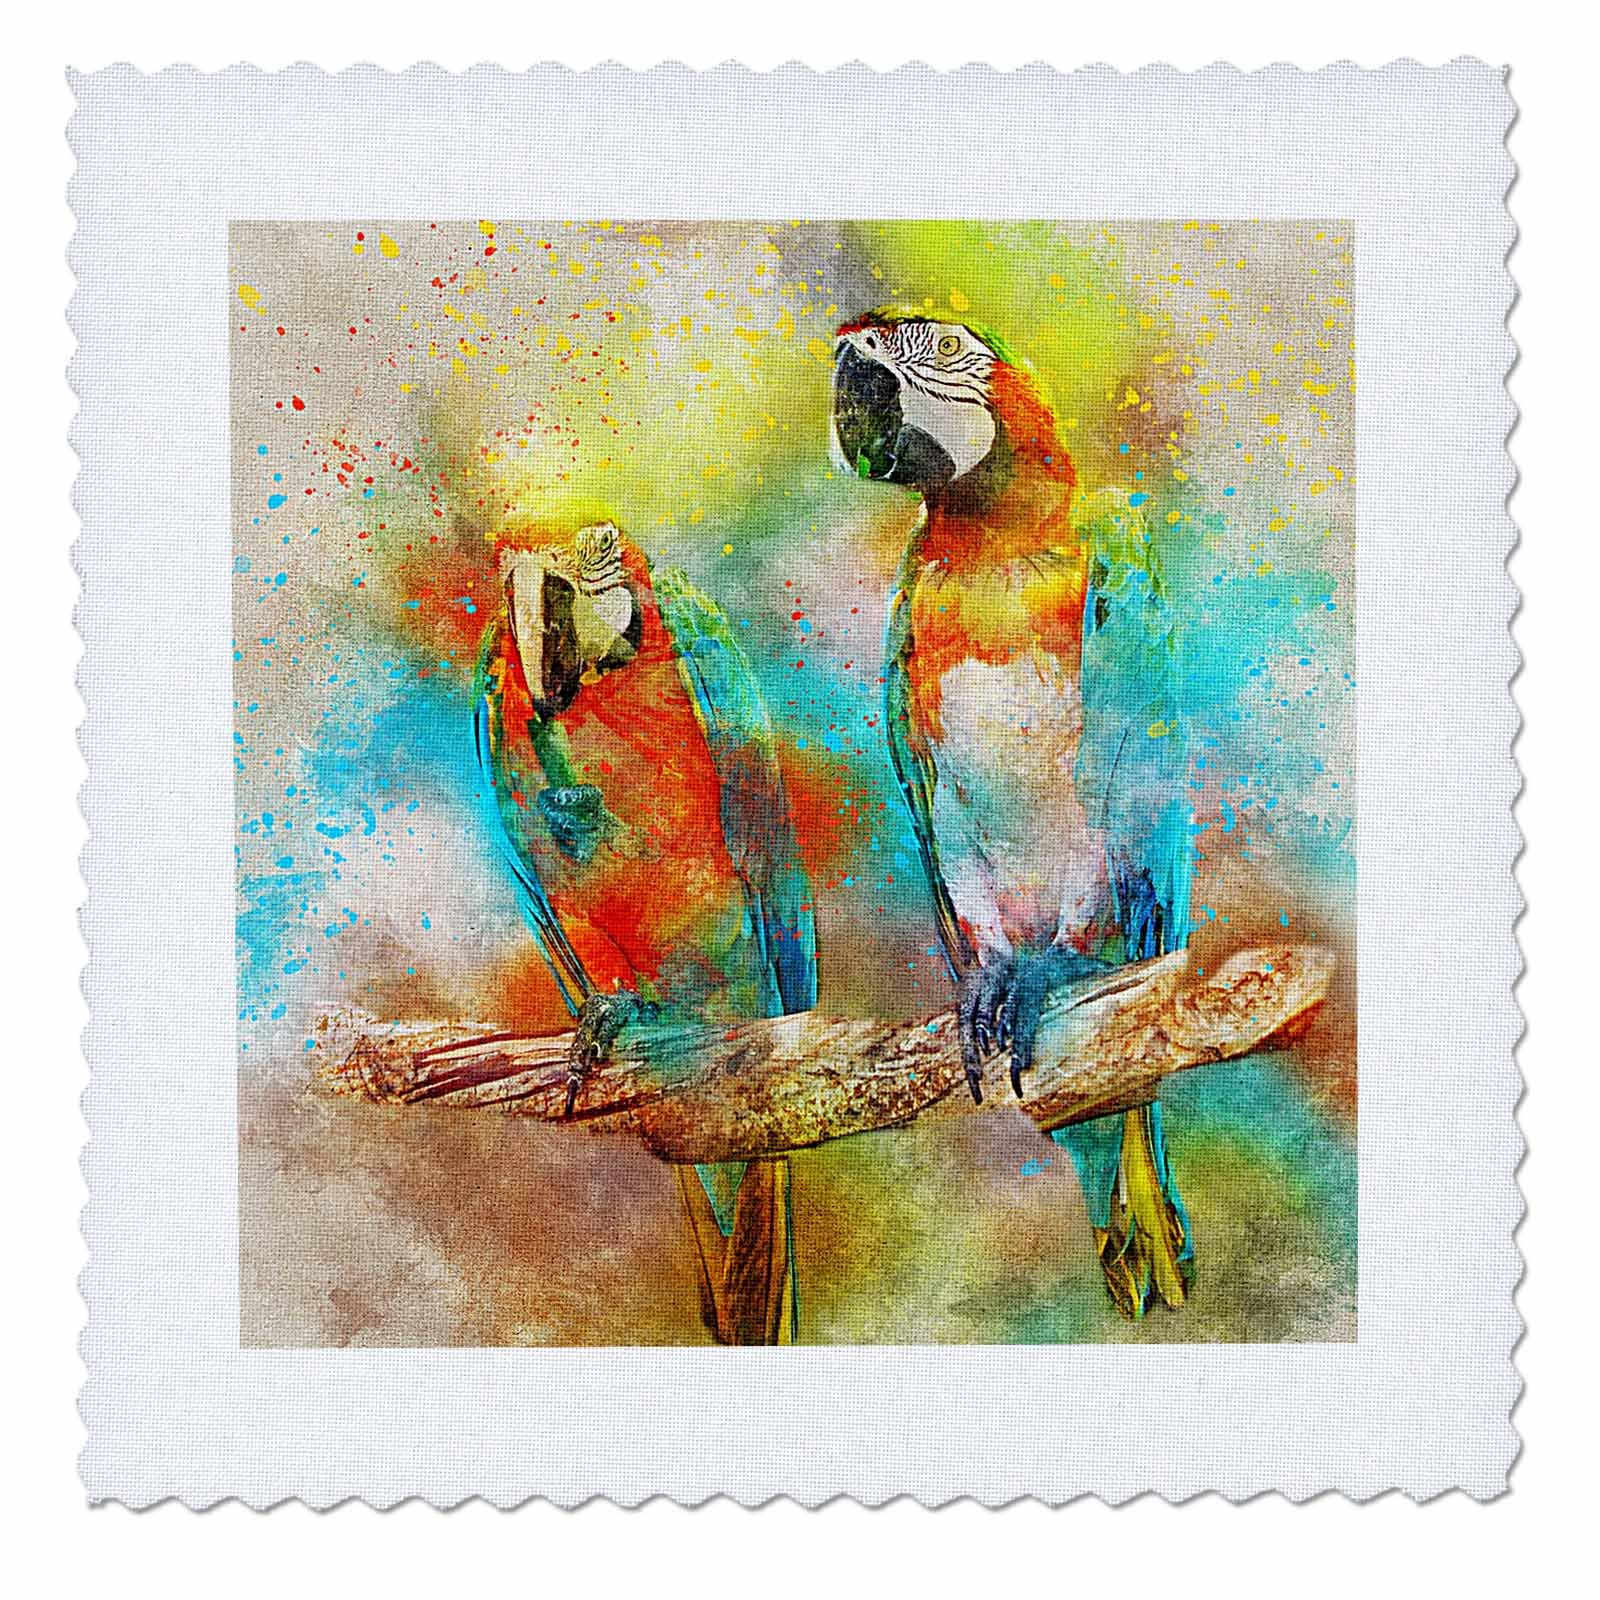 3dRose Sven Herkenrath Animal - Parrot Macaw Bird with Watercolor Background - 22x22 inch quilt square (qs_280255_9)